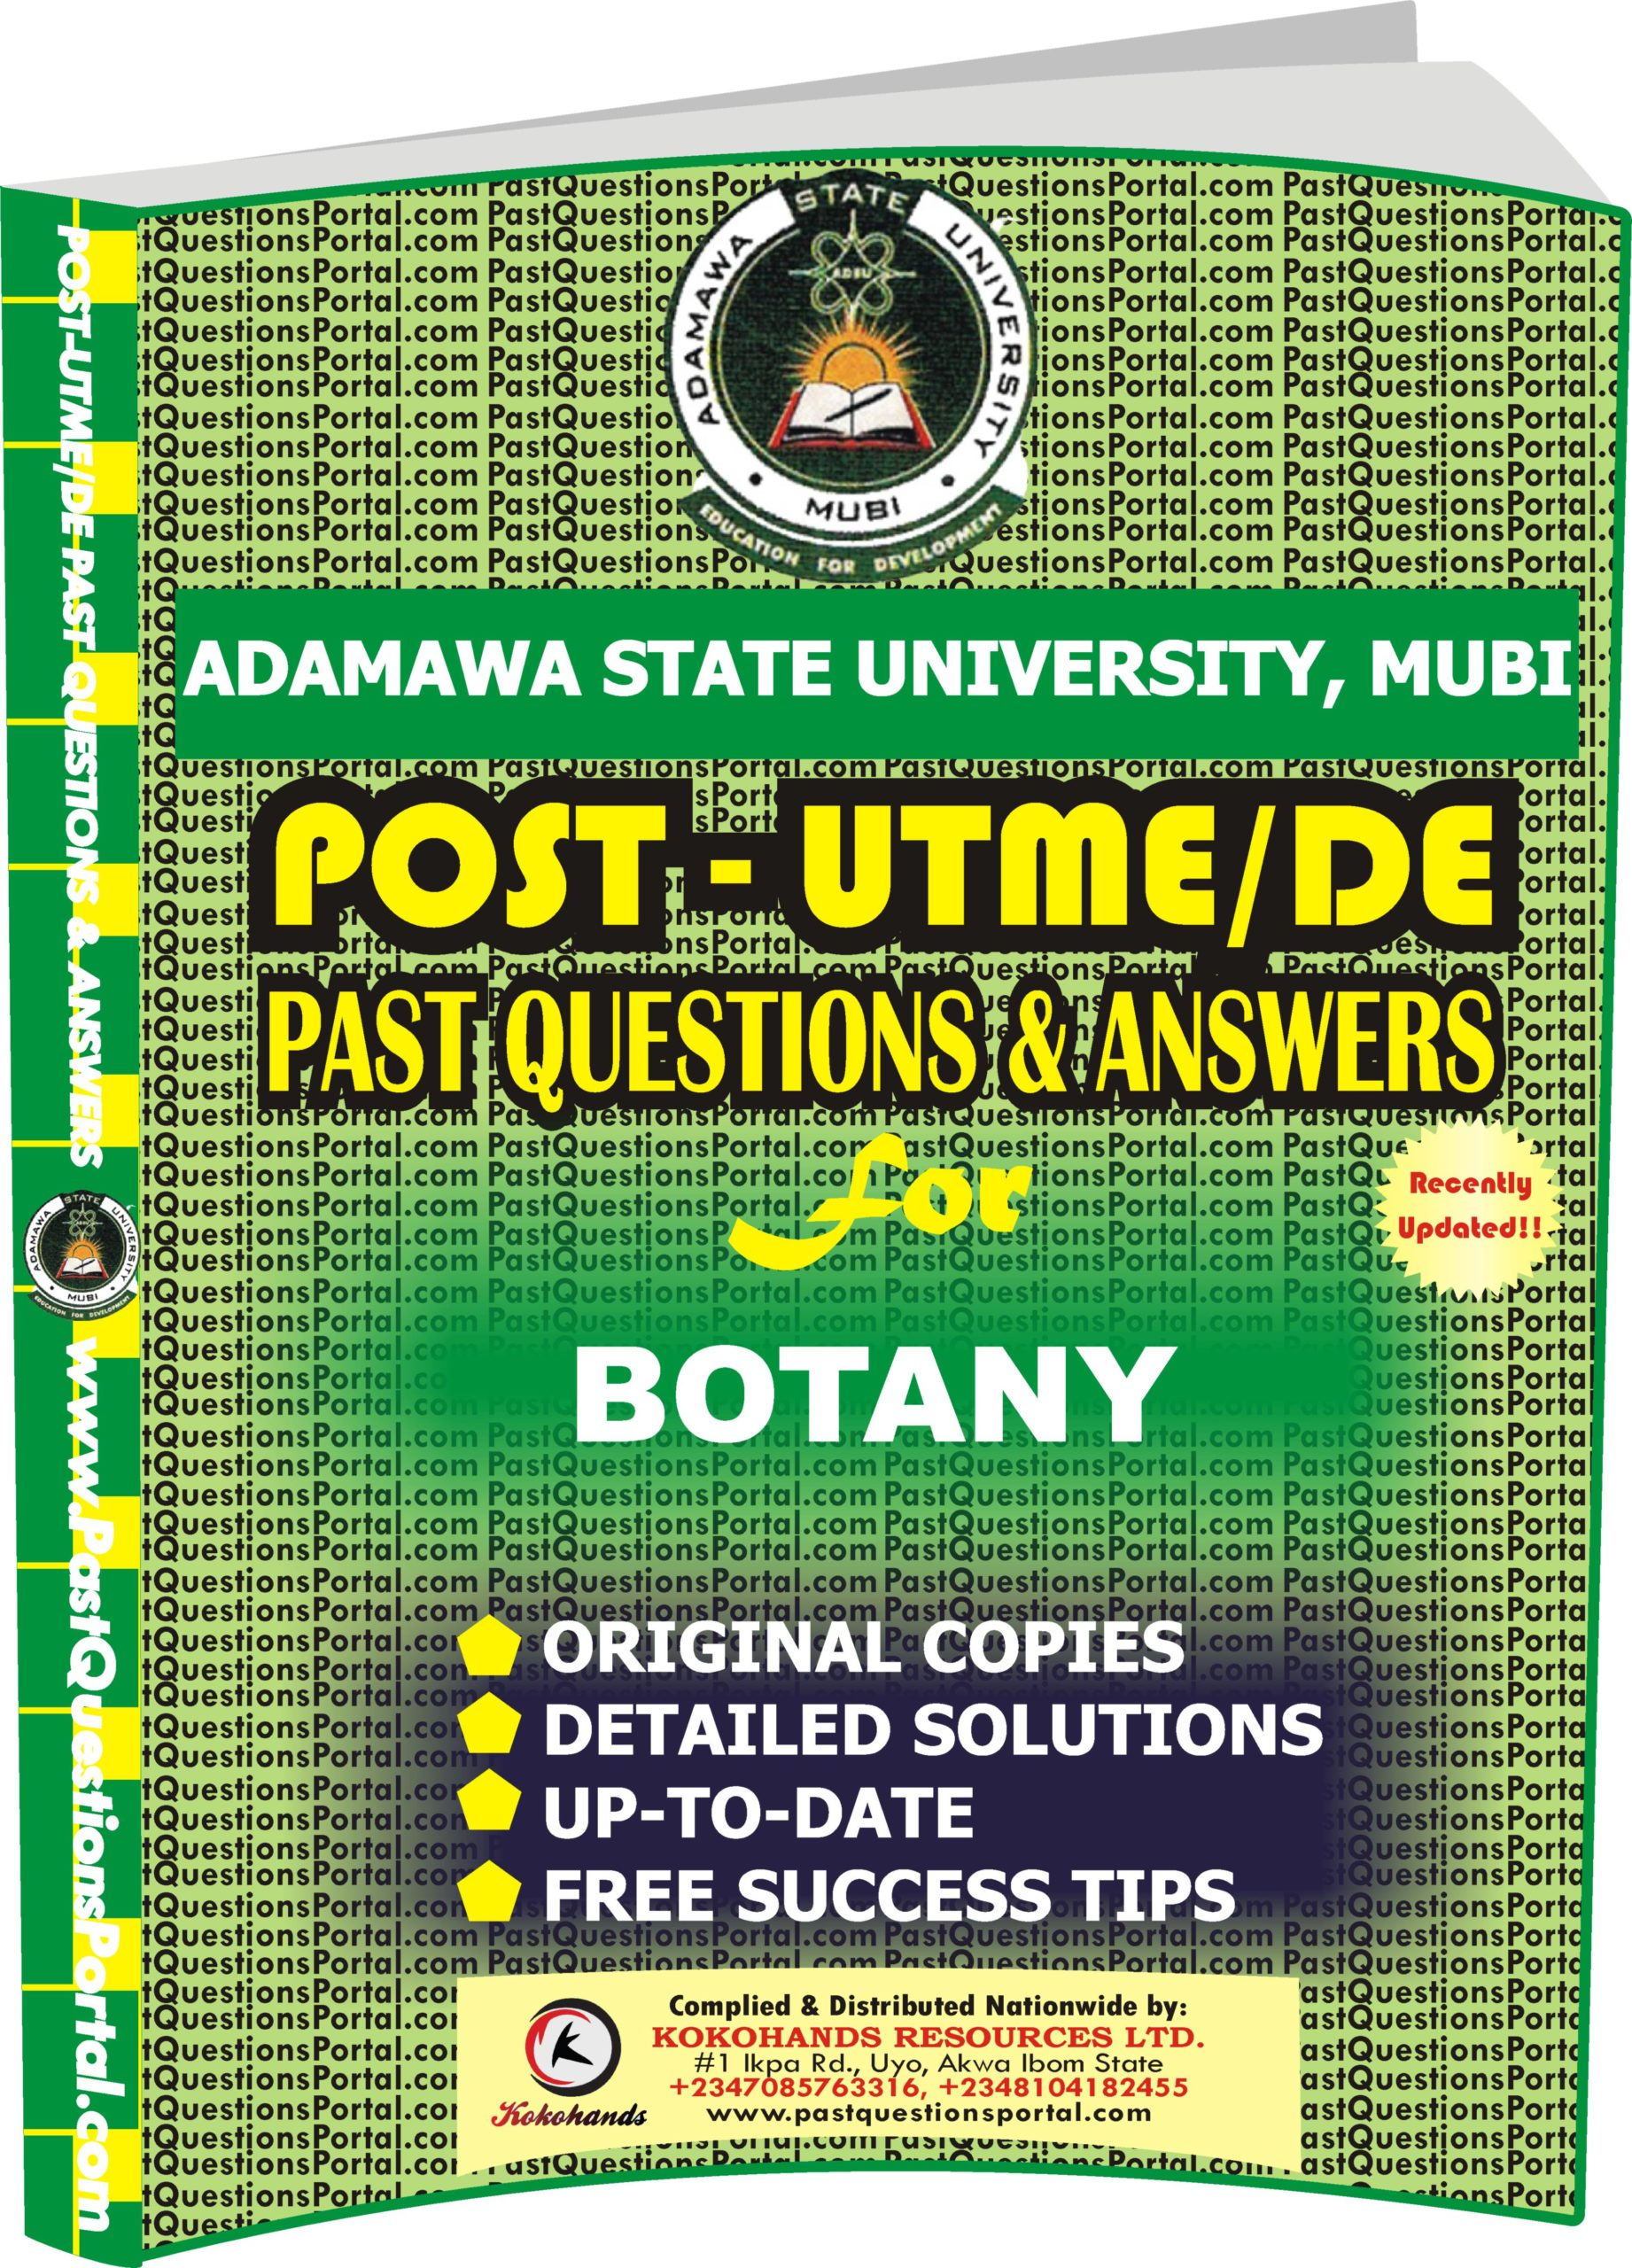 ADSU Post UTME Past Questions for BOTANY